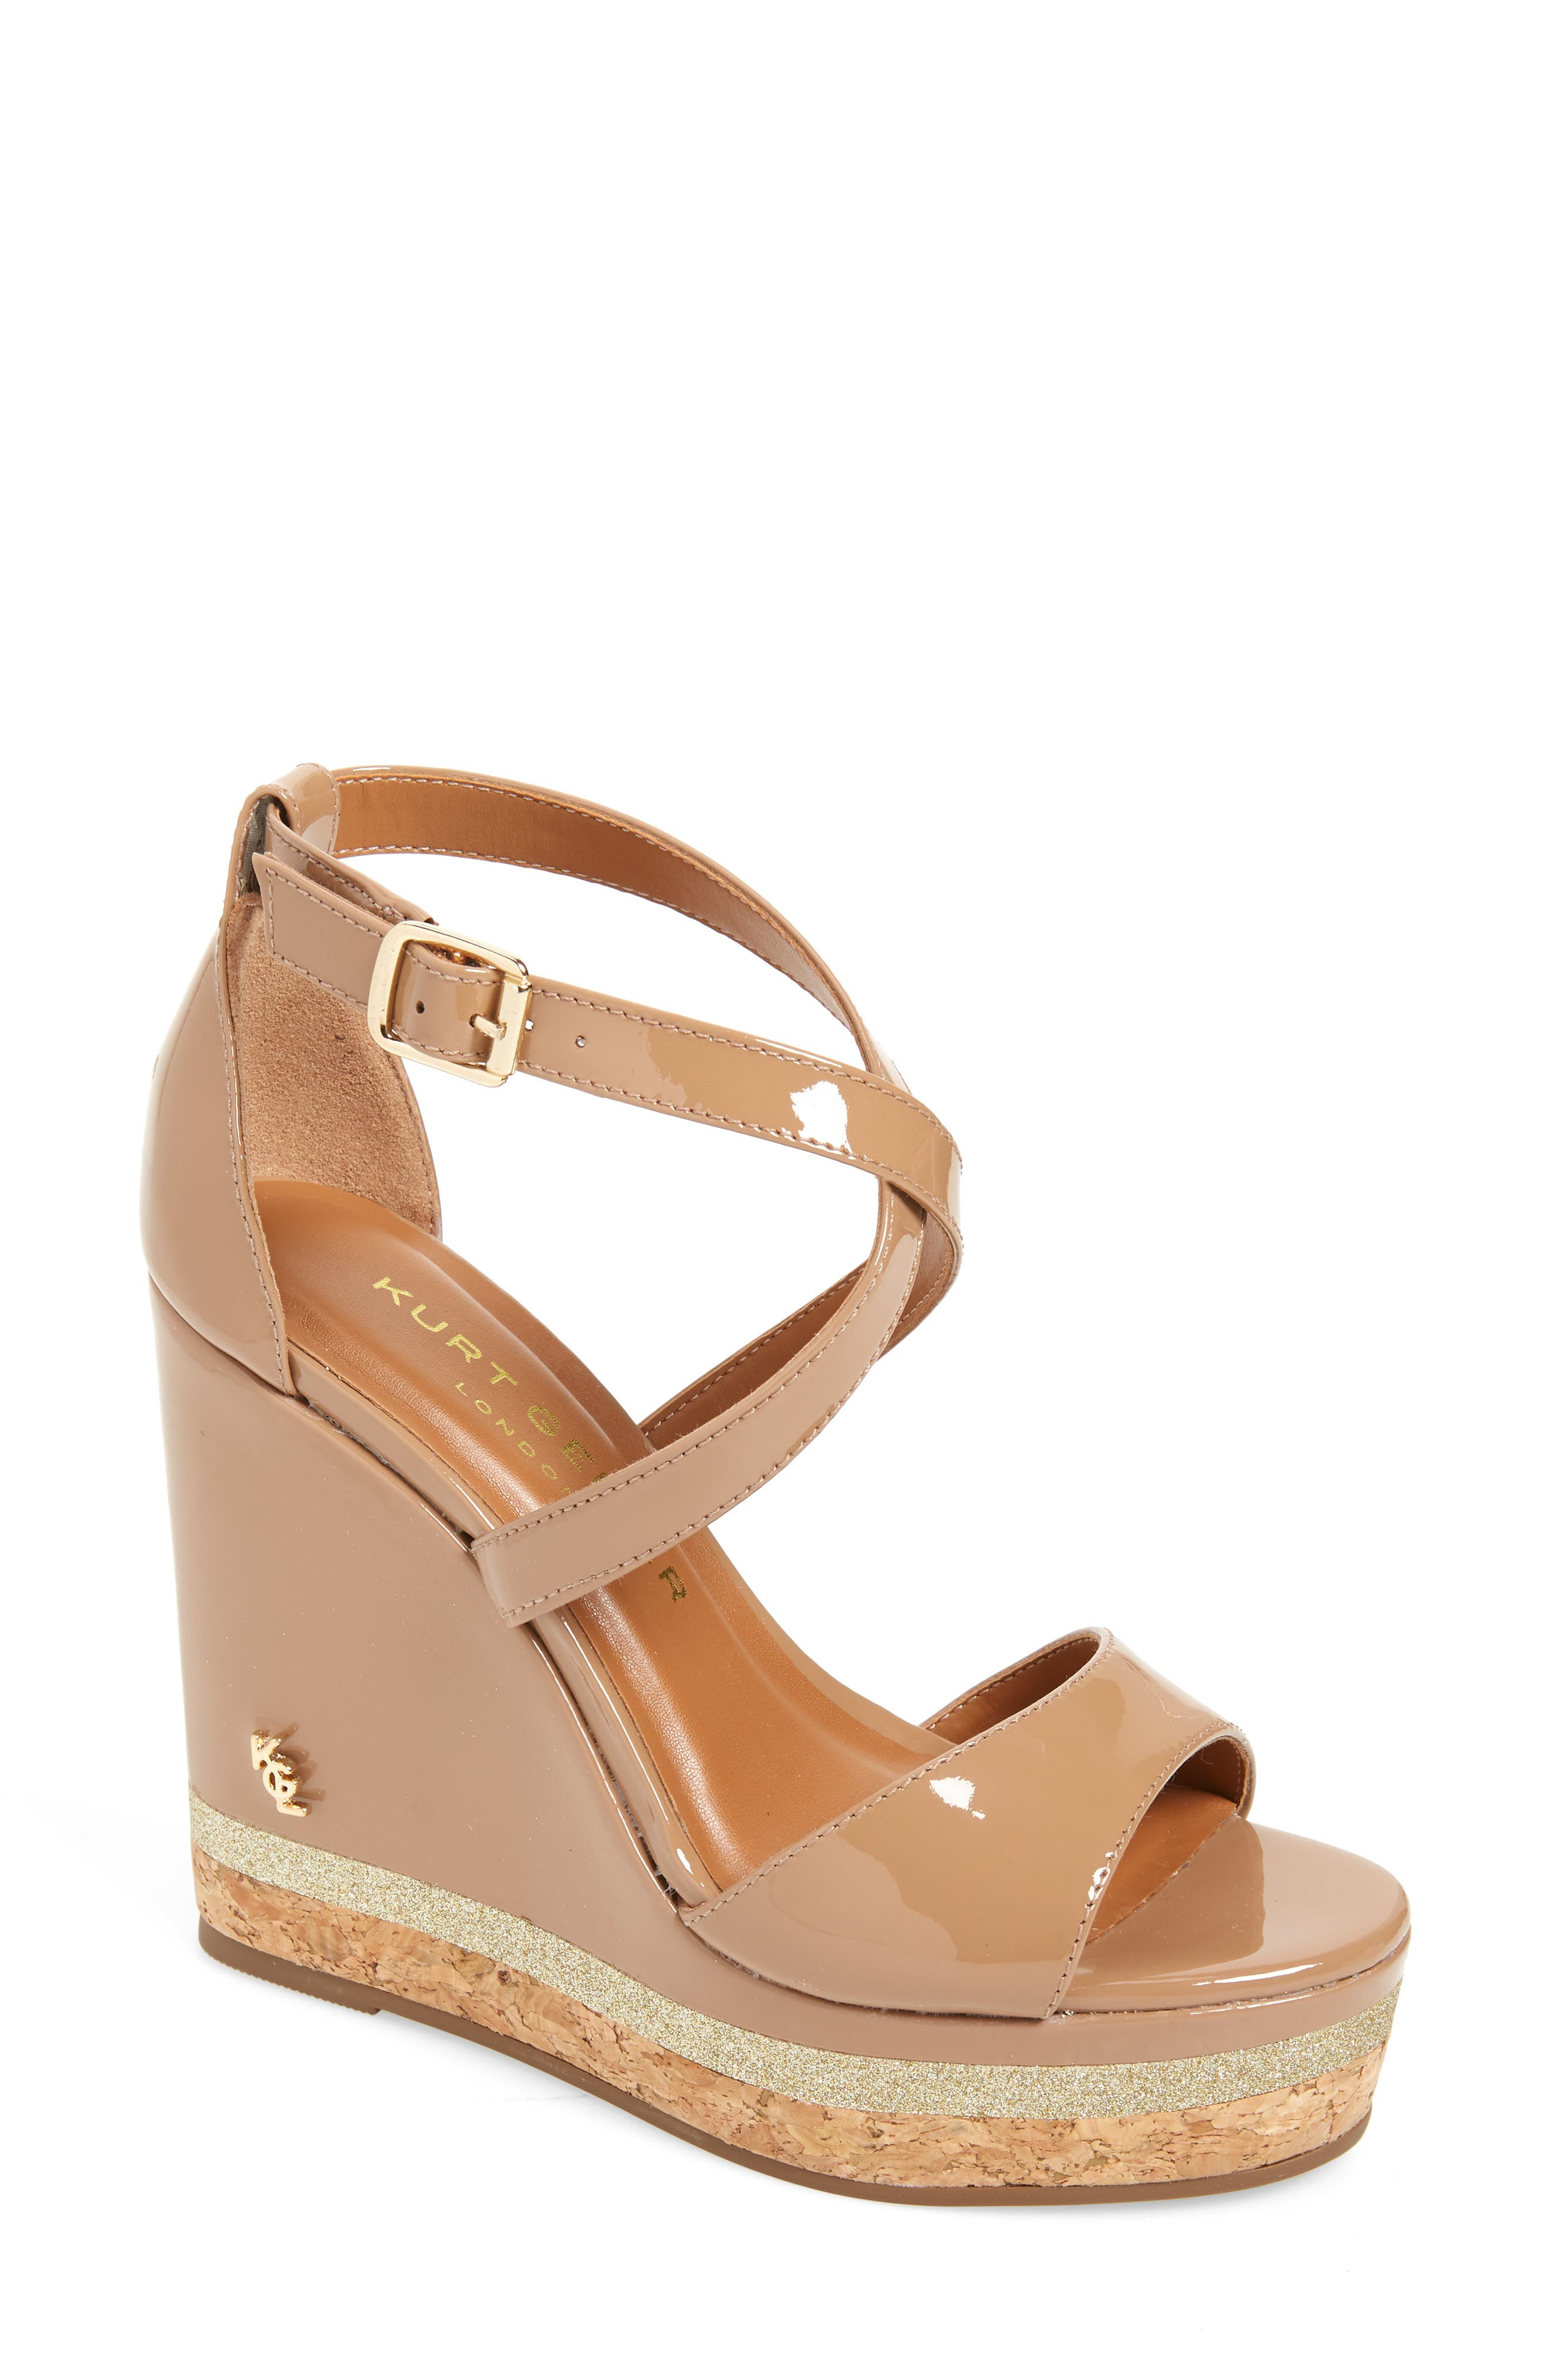 fe2a158f5 Kurt Geiger London Alina Wedge Sandal - Beige